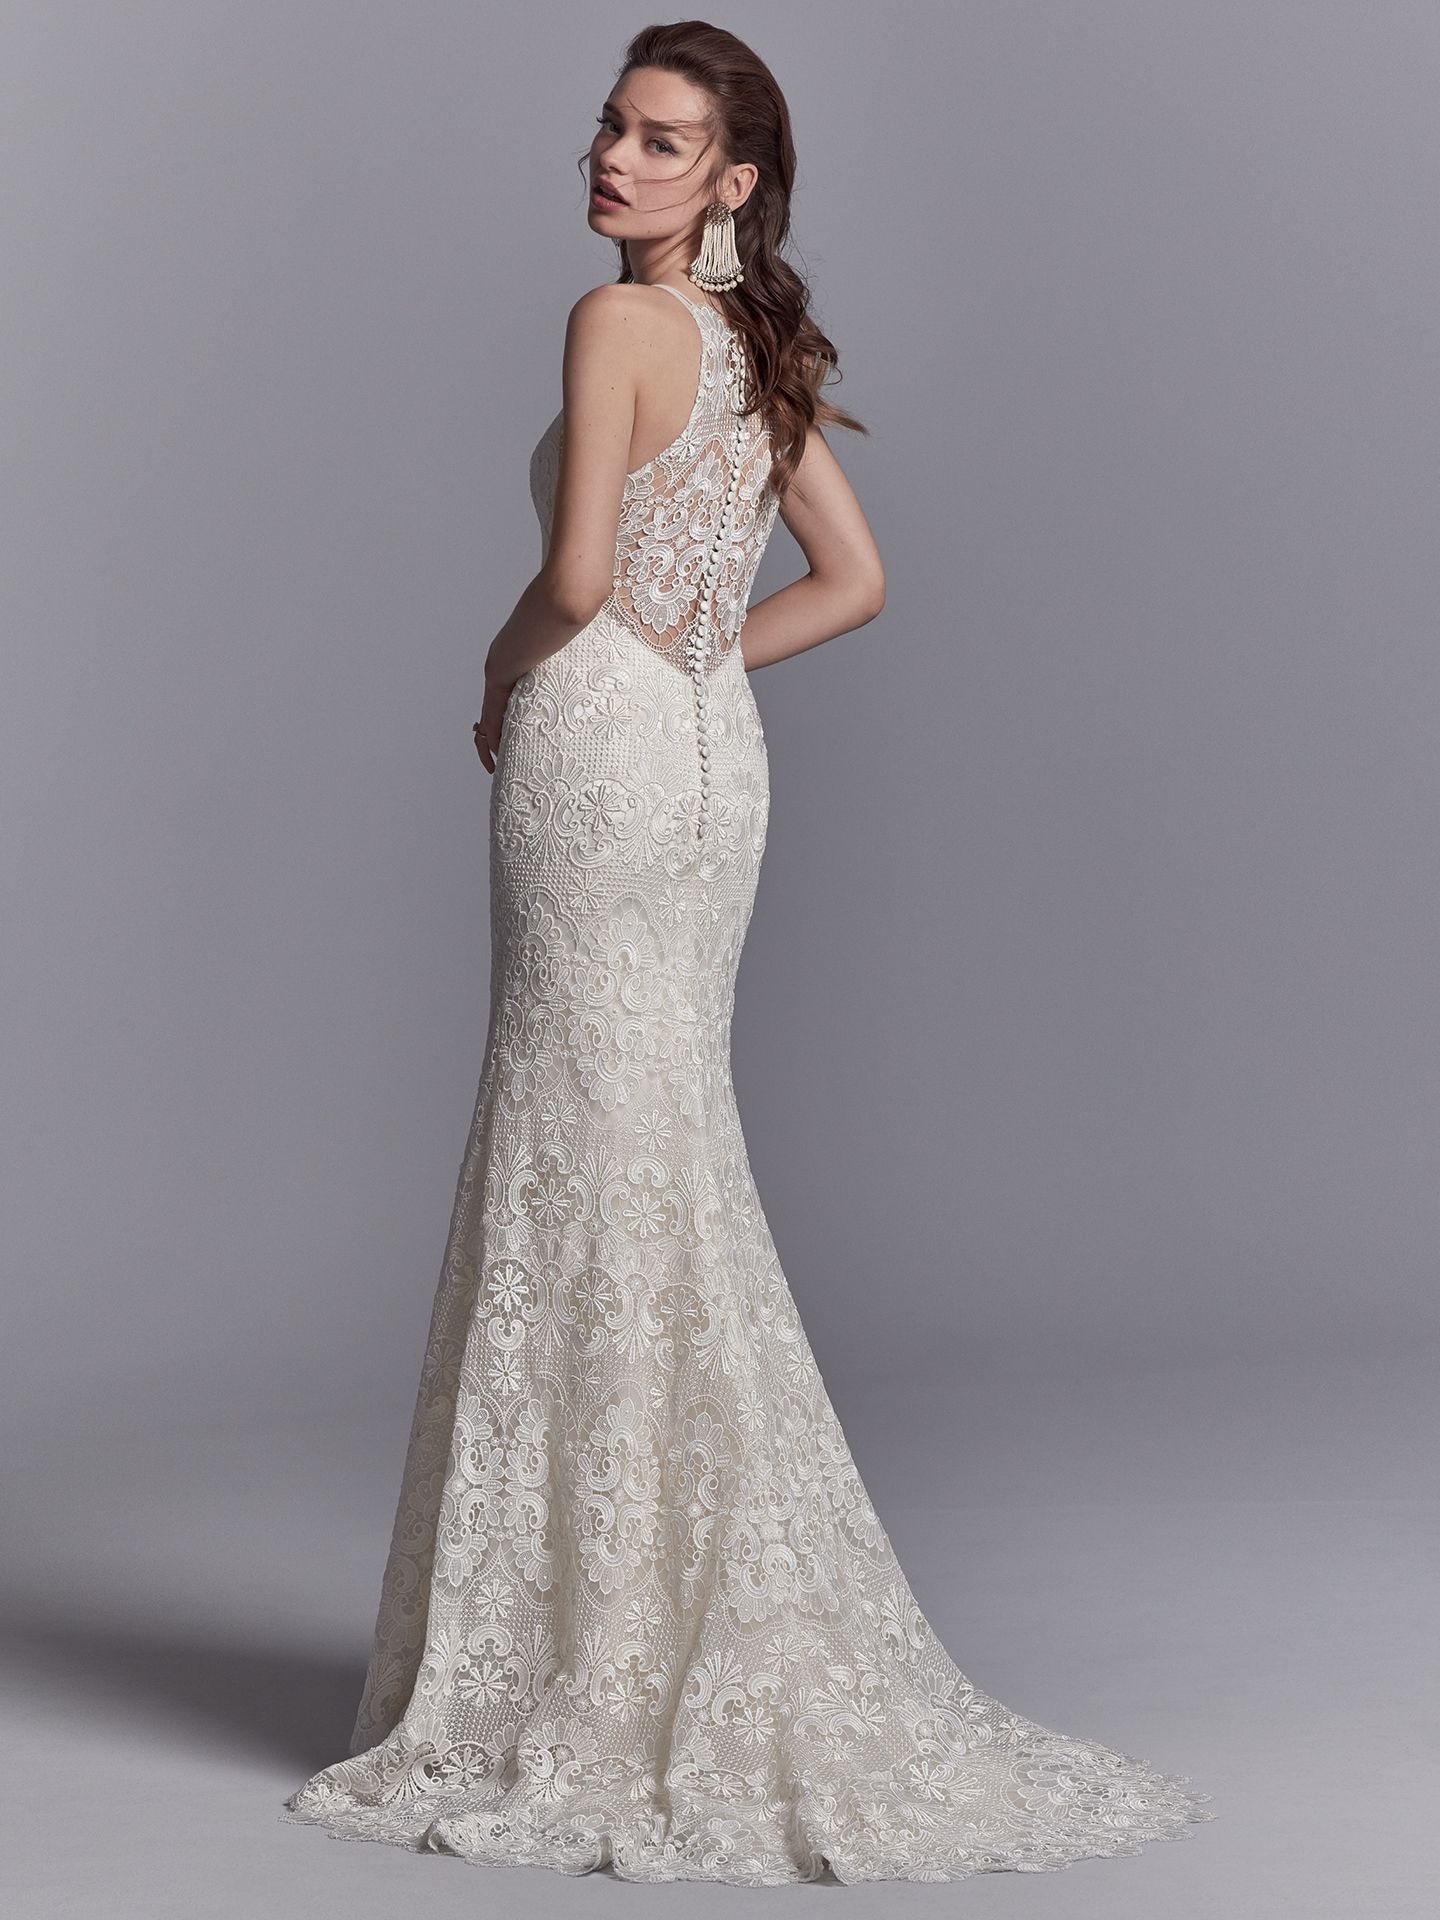 15 Gorgeous Statement-Back Gowns for the Stylish Bride - Zayn vintage lace wedding dress by Sottero & Midgley